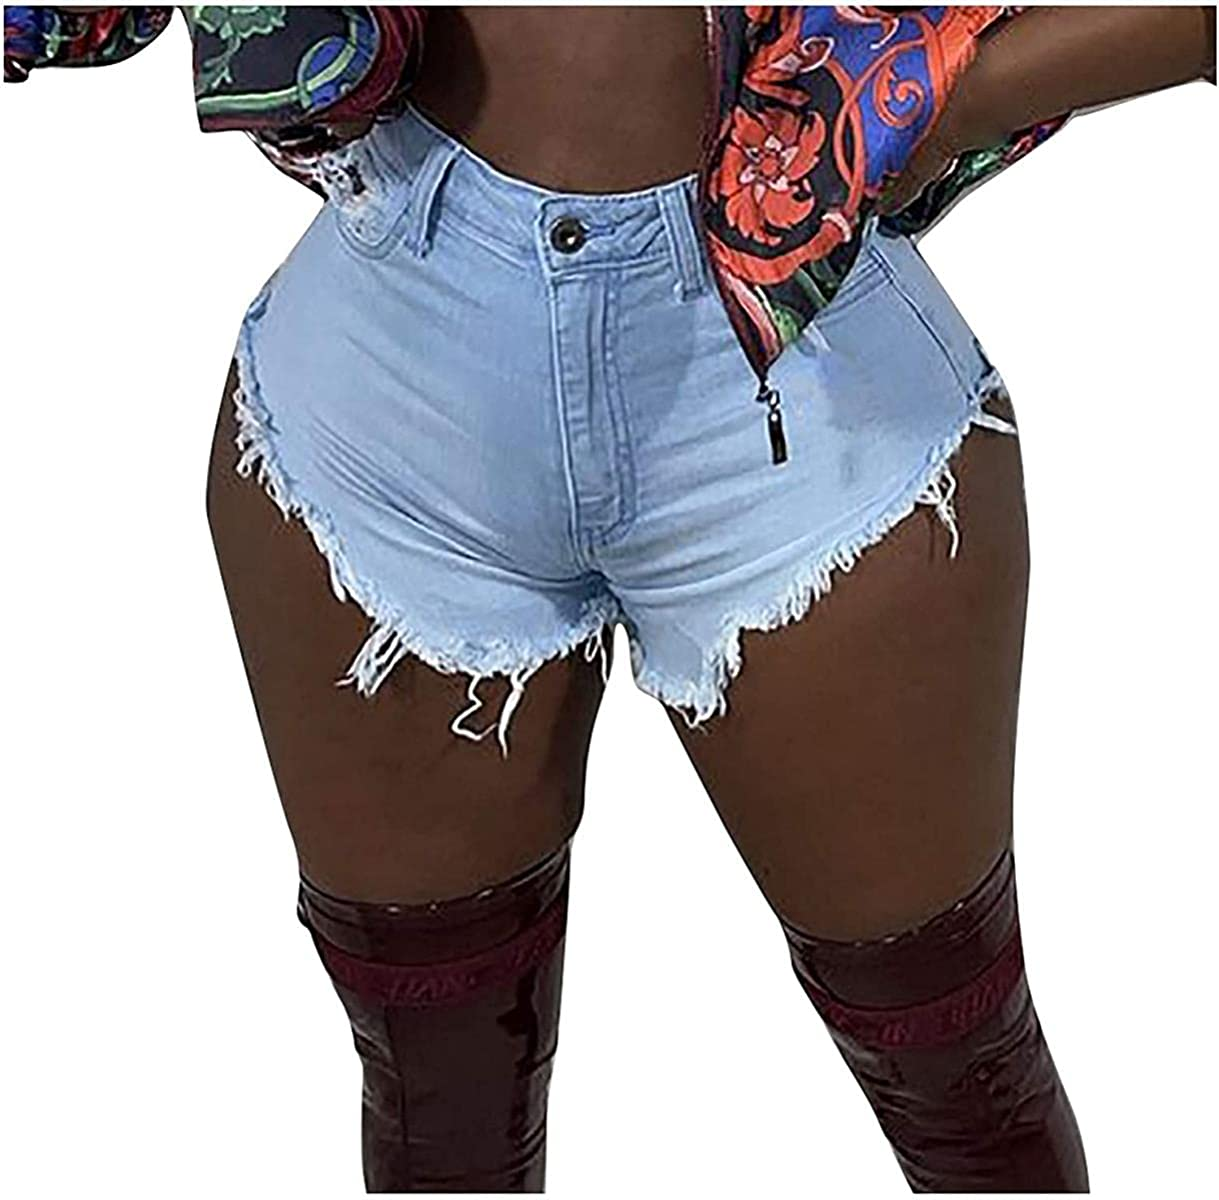 Summer Jean Shorts for Women Distressed Ripped Cut Off High Waisted Denim Shorts